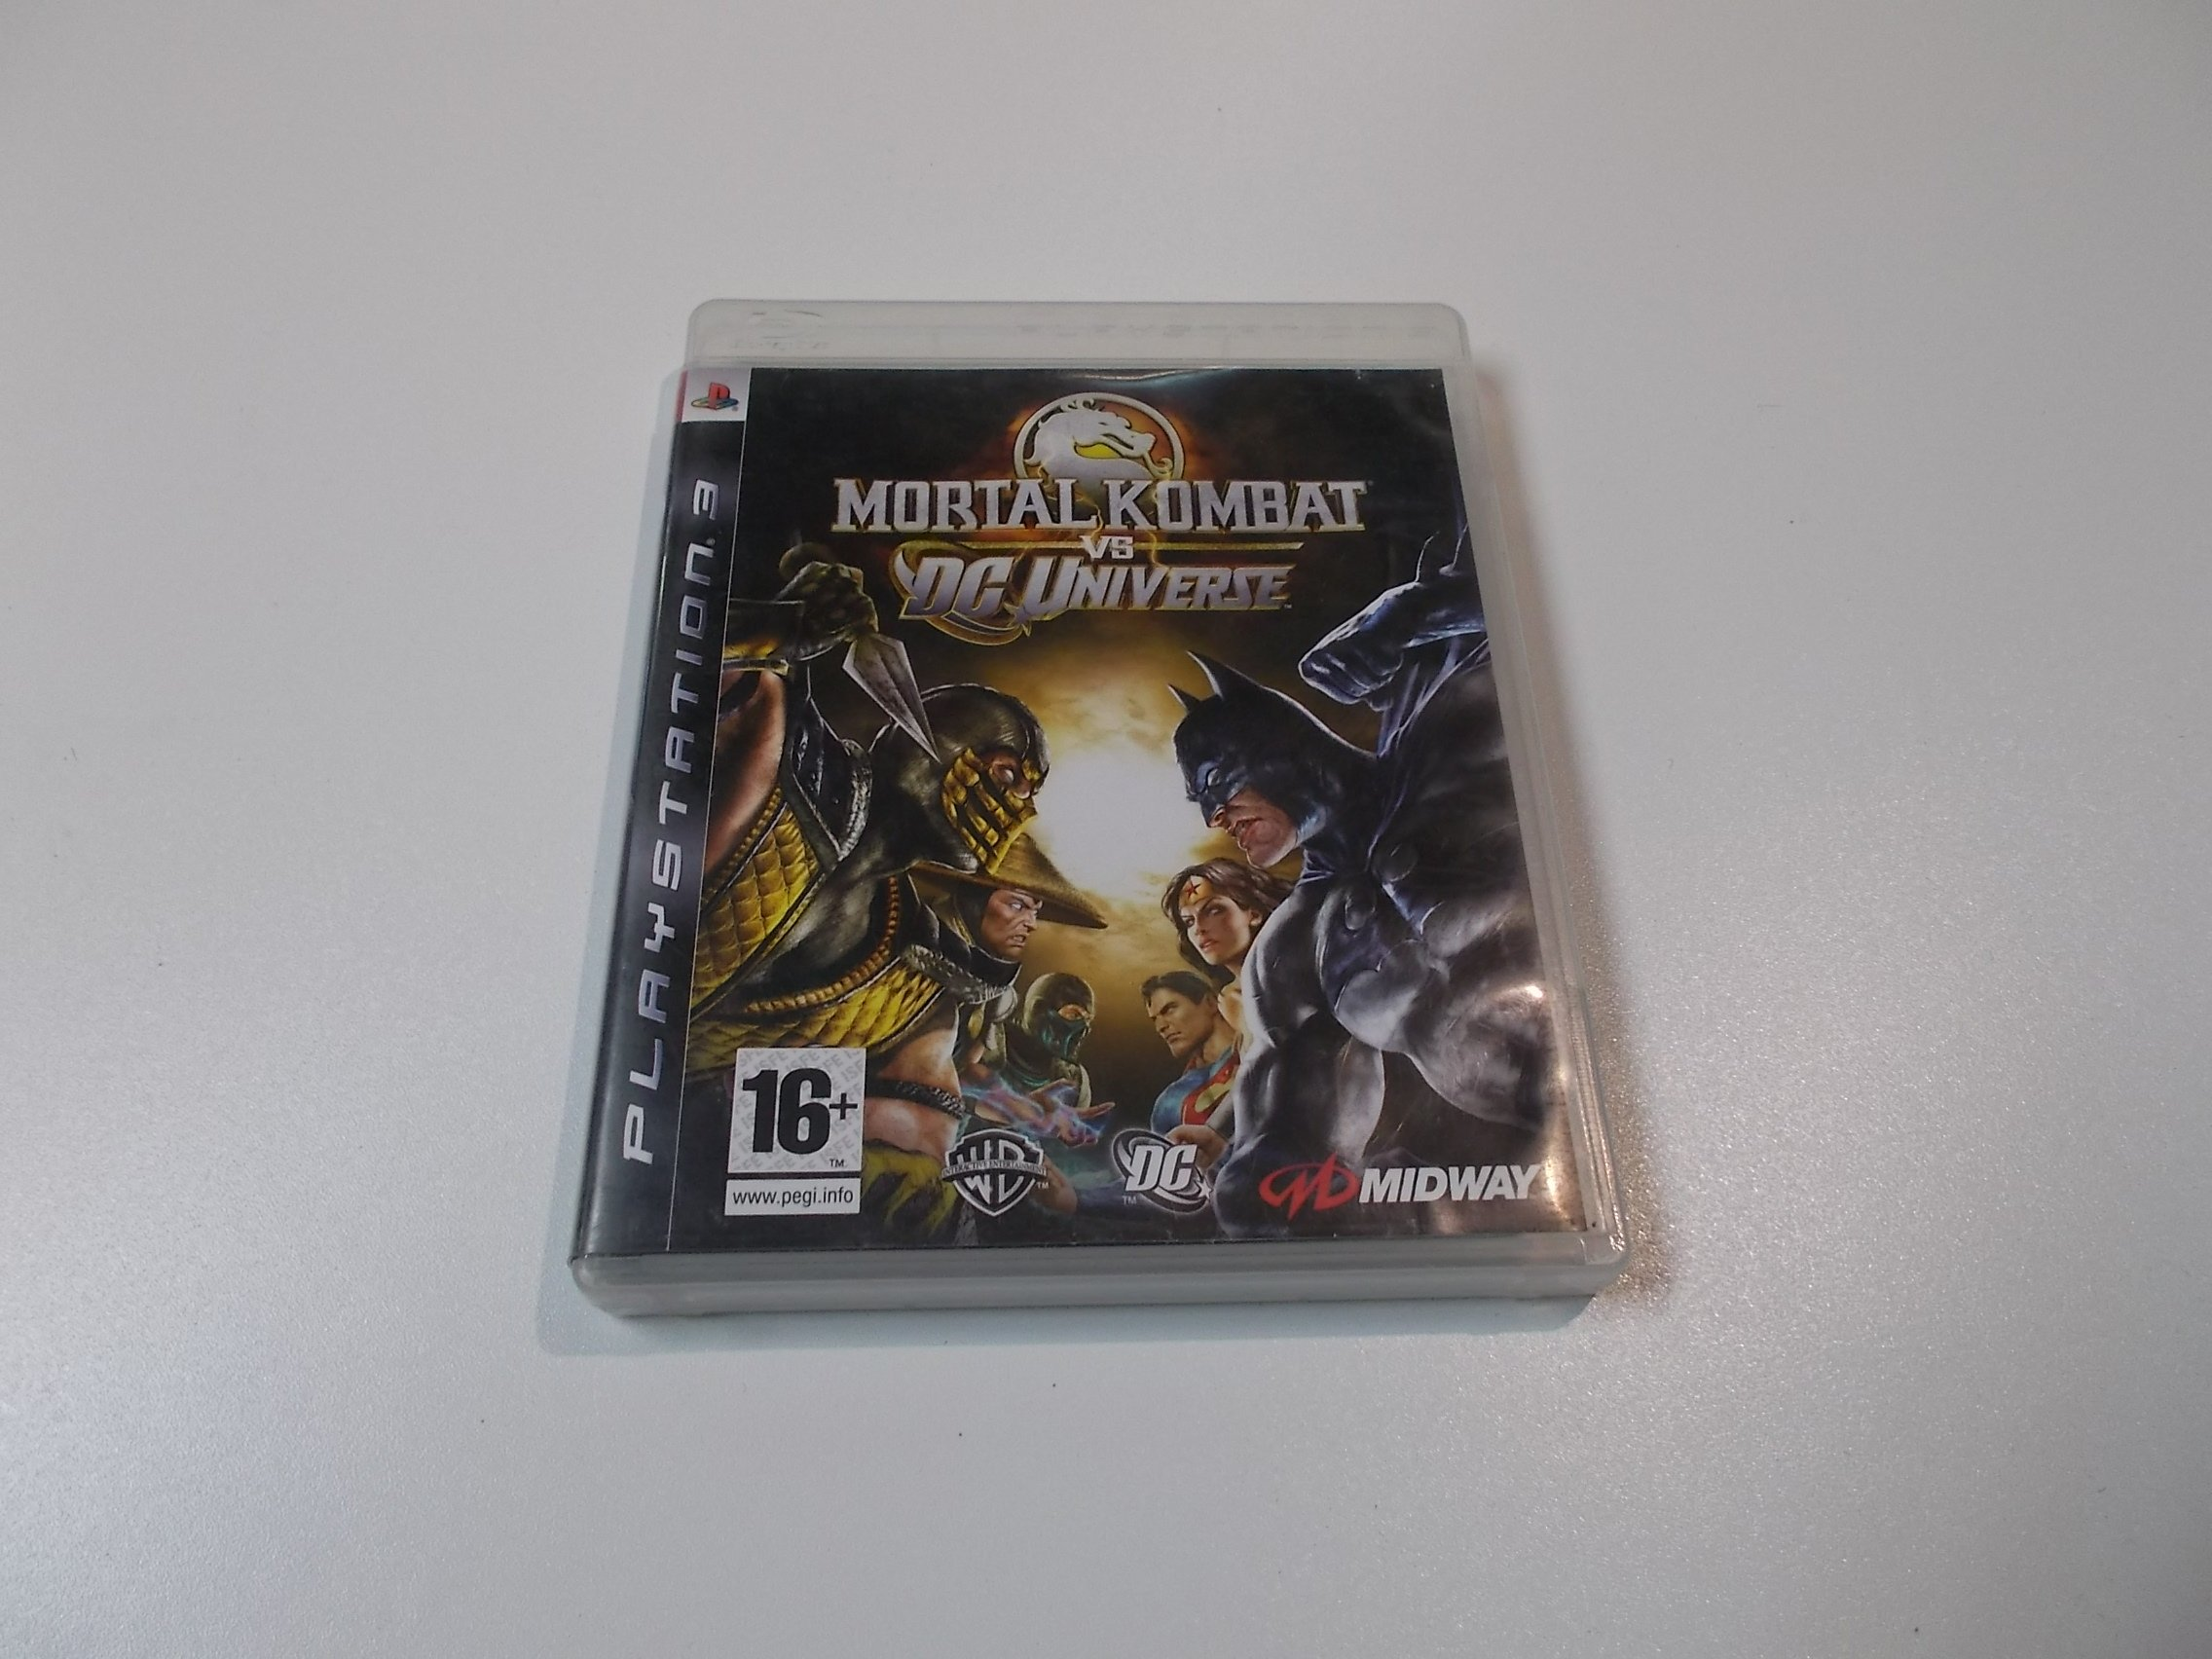 MORTAL KOMBAT VS DC UNIVERSE - GRA Ps3 - 0387